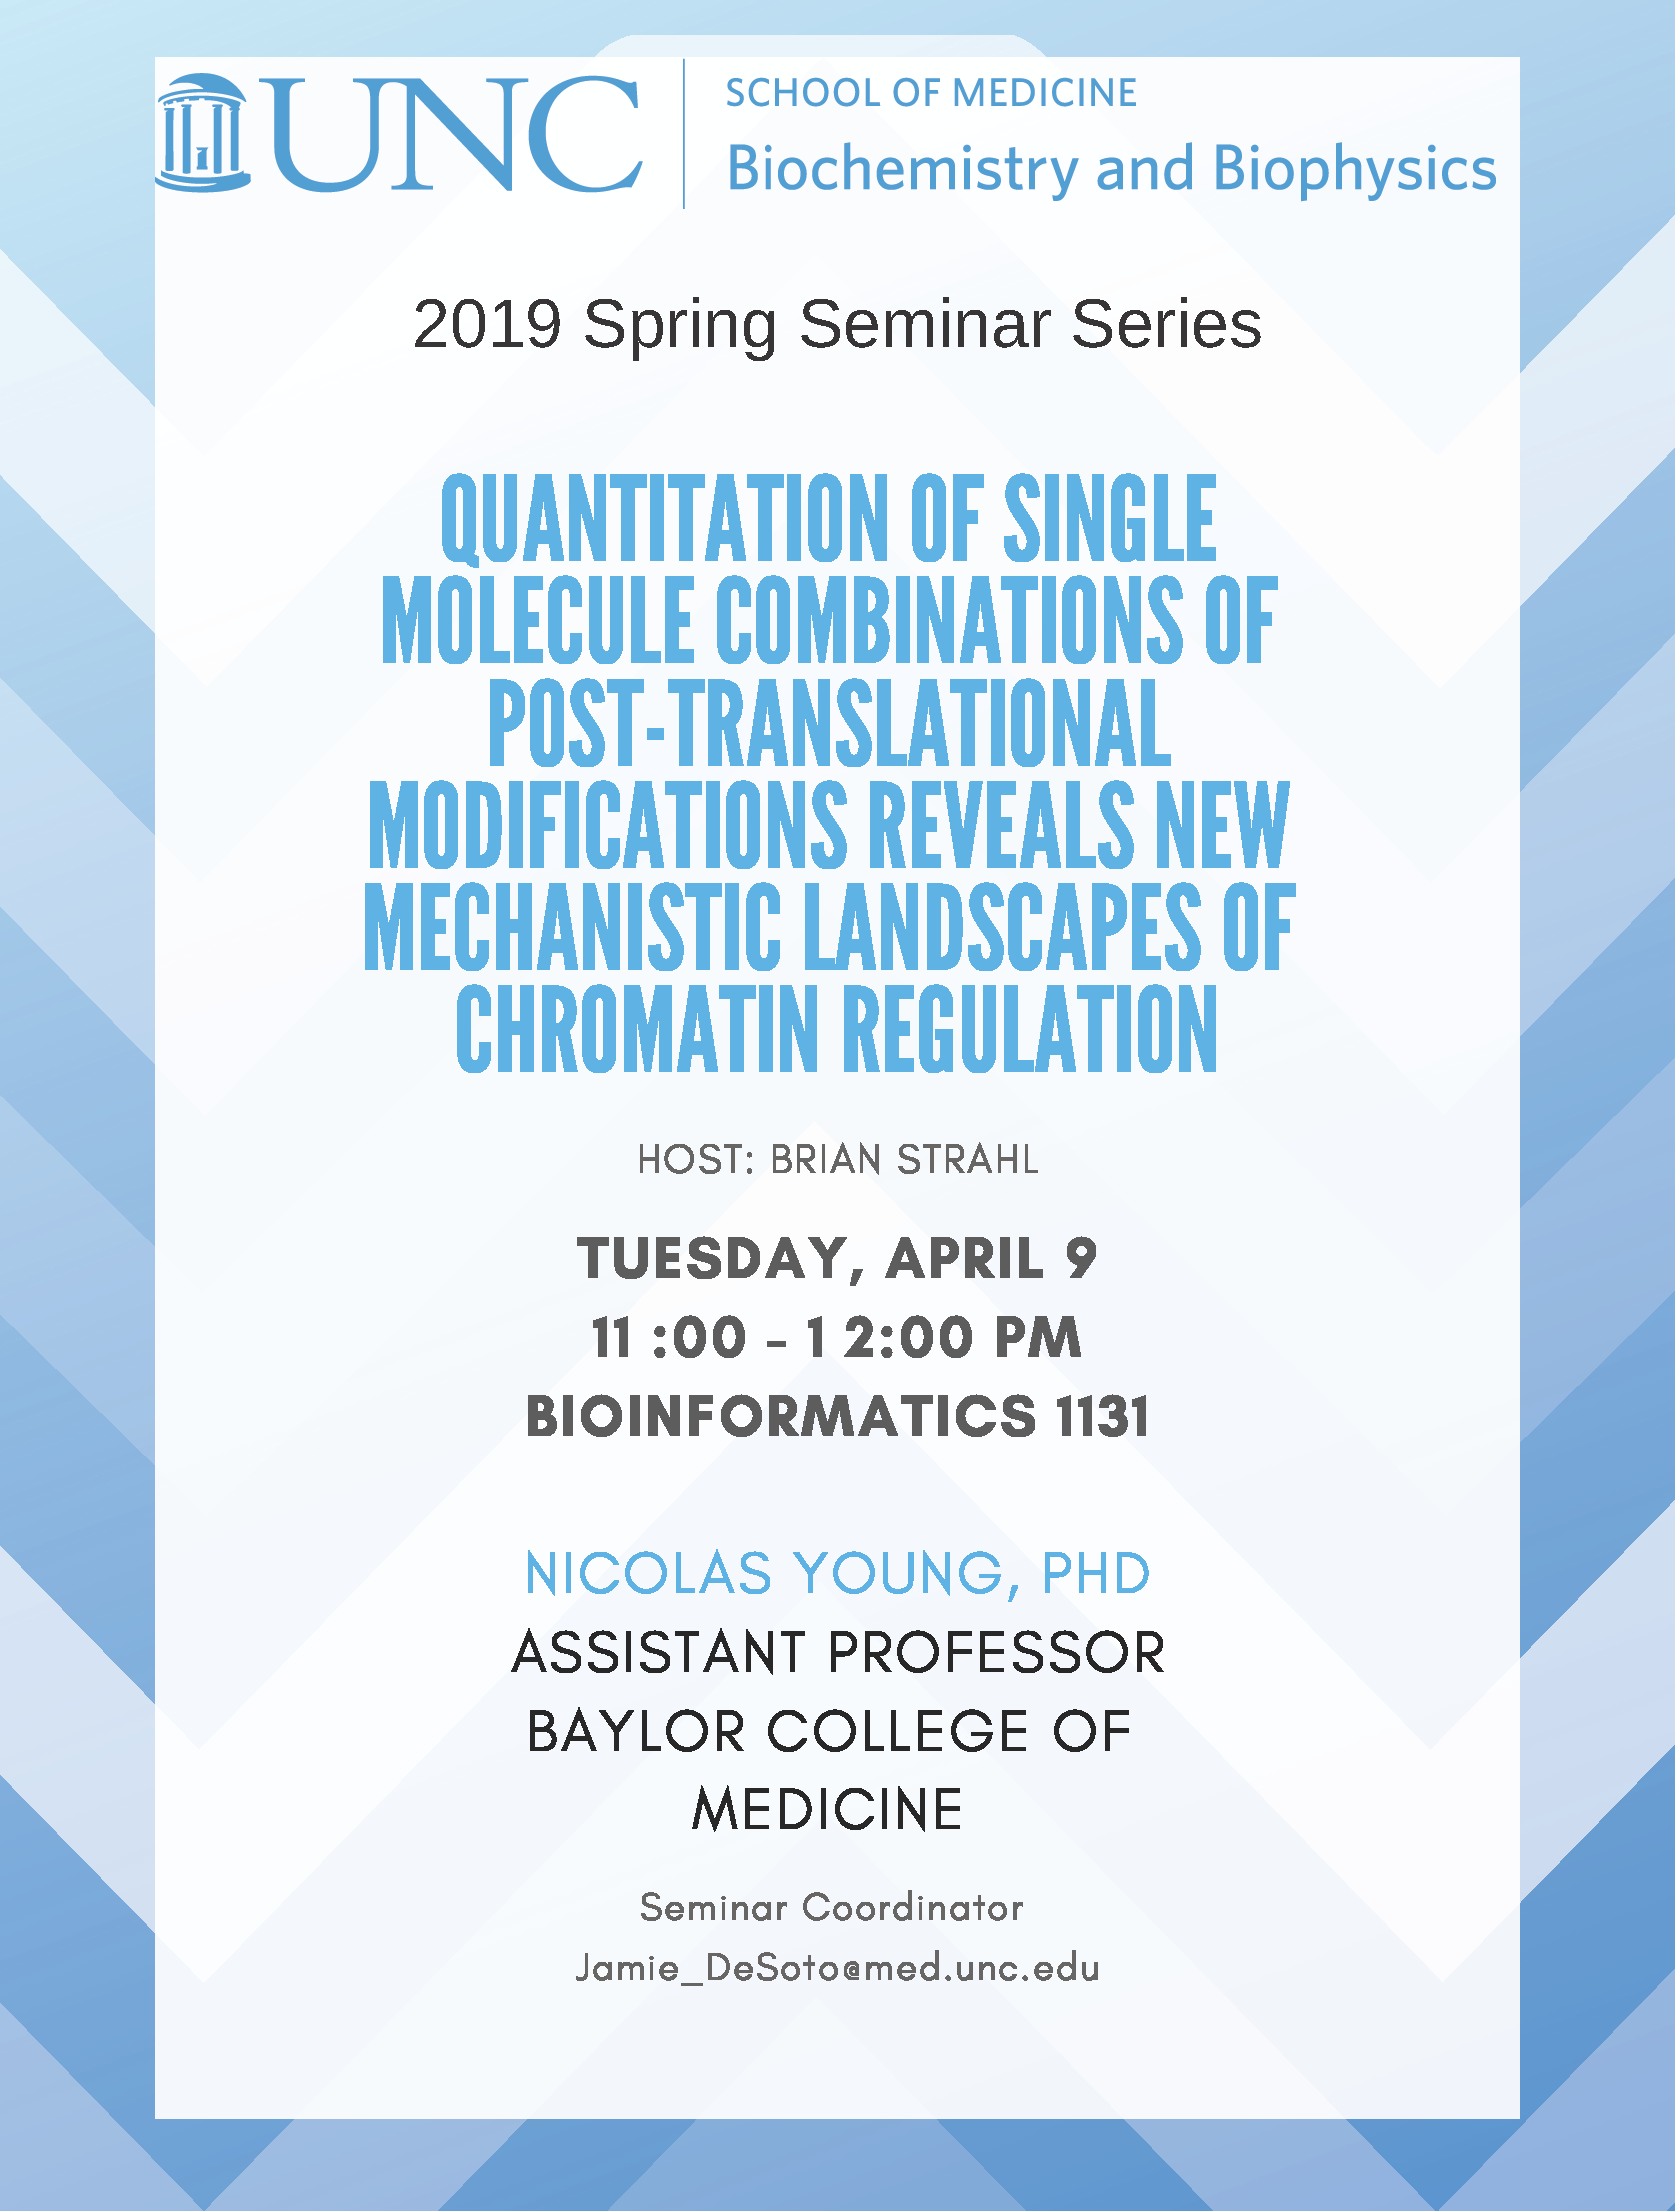 Nick Young BCBP seminar event flier Apr 9 2019